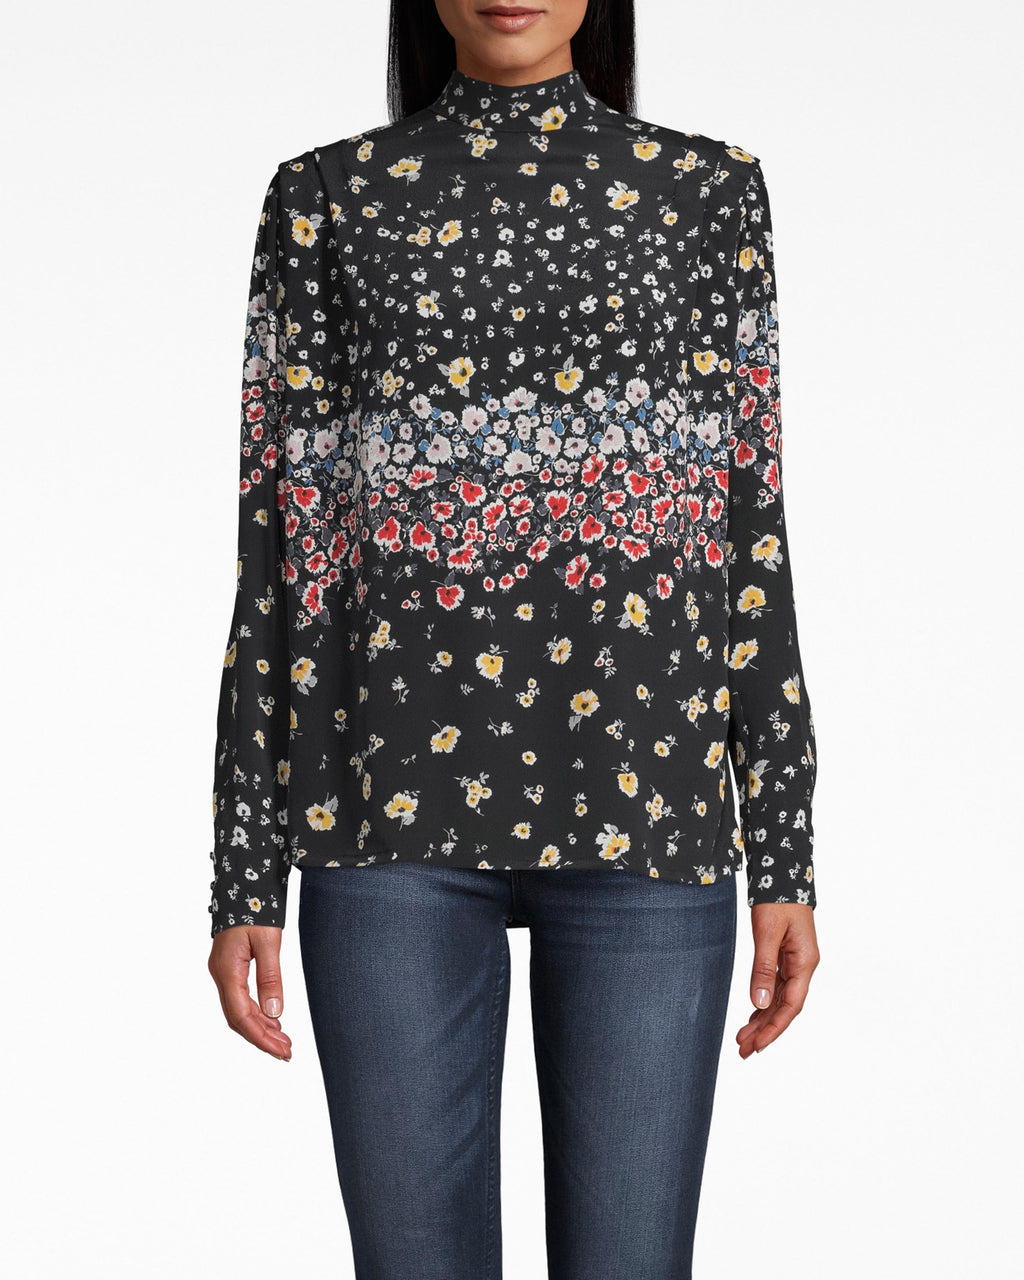 CT18041 - ASHBURY FLORAL SILK BLOUSE W/ SHOULDER FLANGE - tops - blouses - THIS MOCK NECK LONG SLEEVE FEATURES A SLIGHT PADDED SHOULDER WITH PLEATED DETAIL. DESIGNED IN OUR NEW FALL FLORAL, THIS TOP PAIRS WELL WITH EVERYTHING FROM JEANS TO LEATHER SKIRTS. Add 1 line break STYLIST TIP: STYLE WITH CHUNKY GOLD HOOPS.